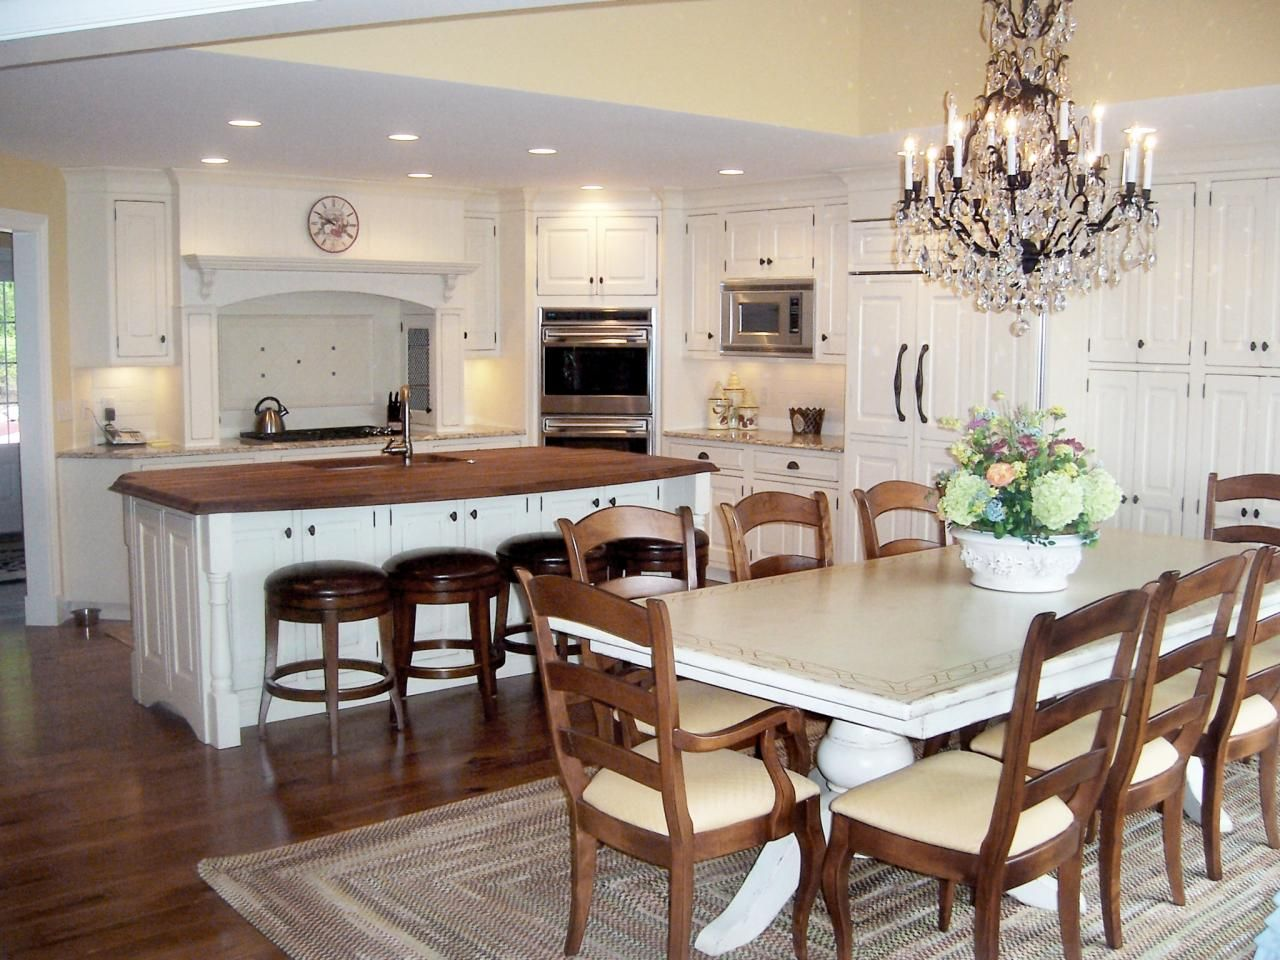 Kitchen Island Bar Stools Pictures Ideas & Tips From  Hgtv Mesmerizing Kitchen Island Chairs Inspiration